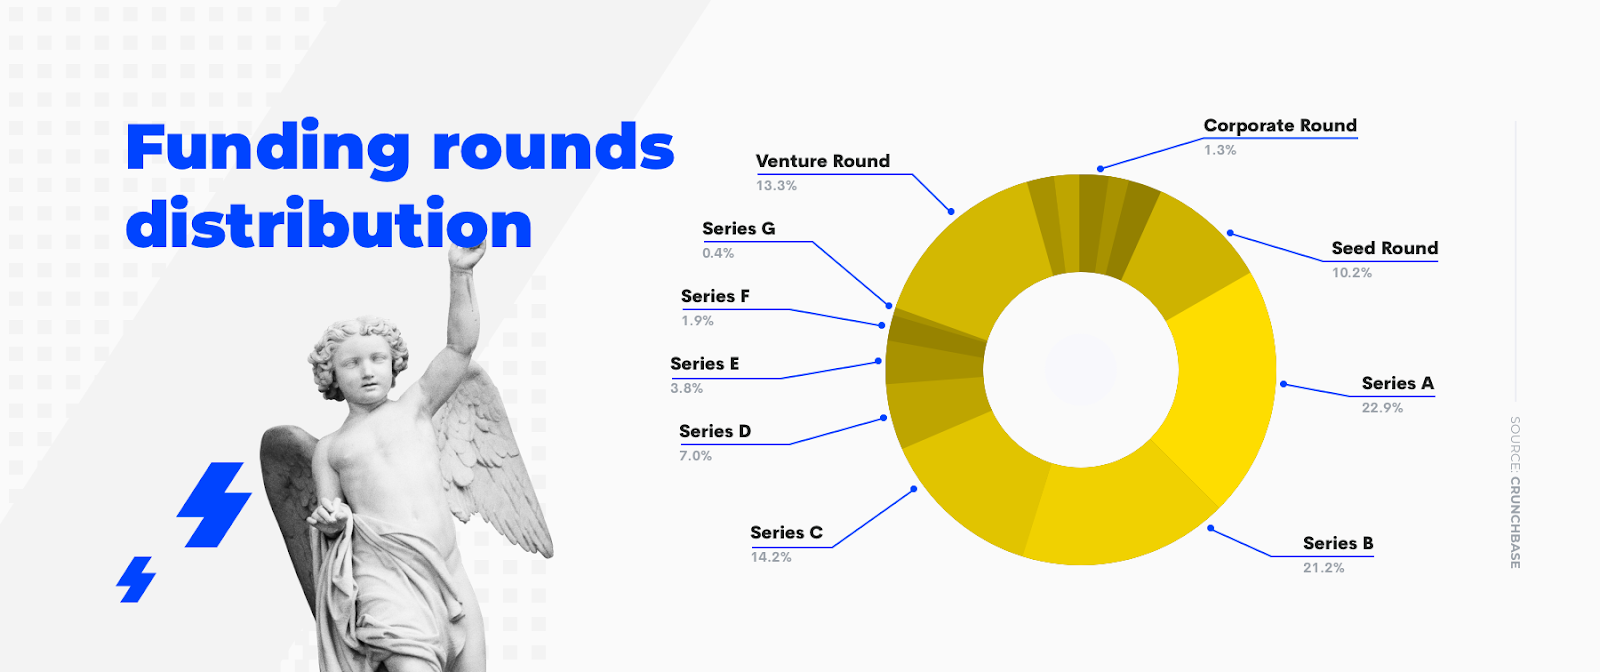 which funding rounds does Salesforce invest in?